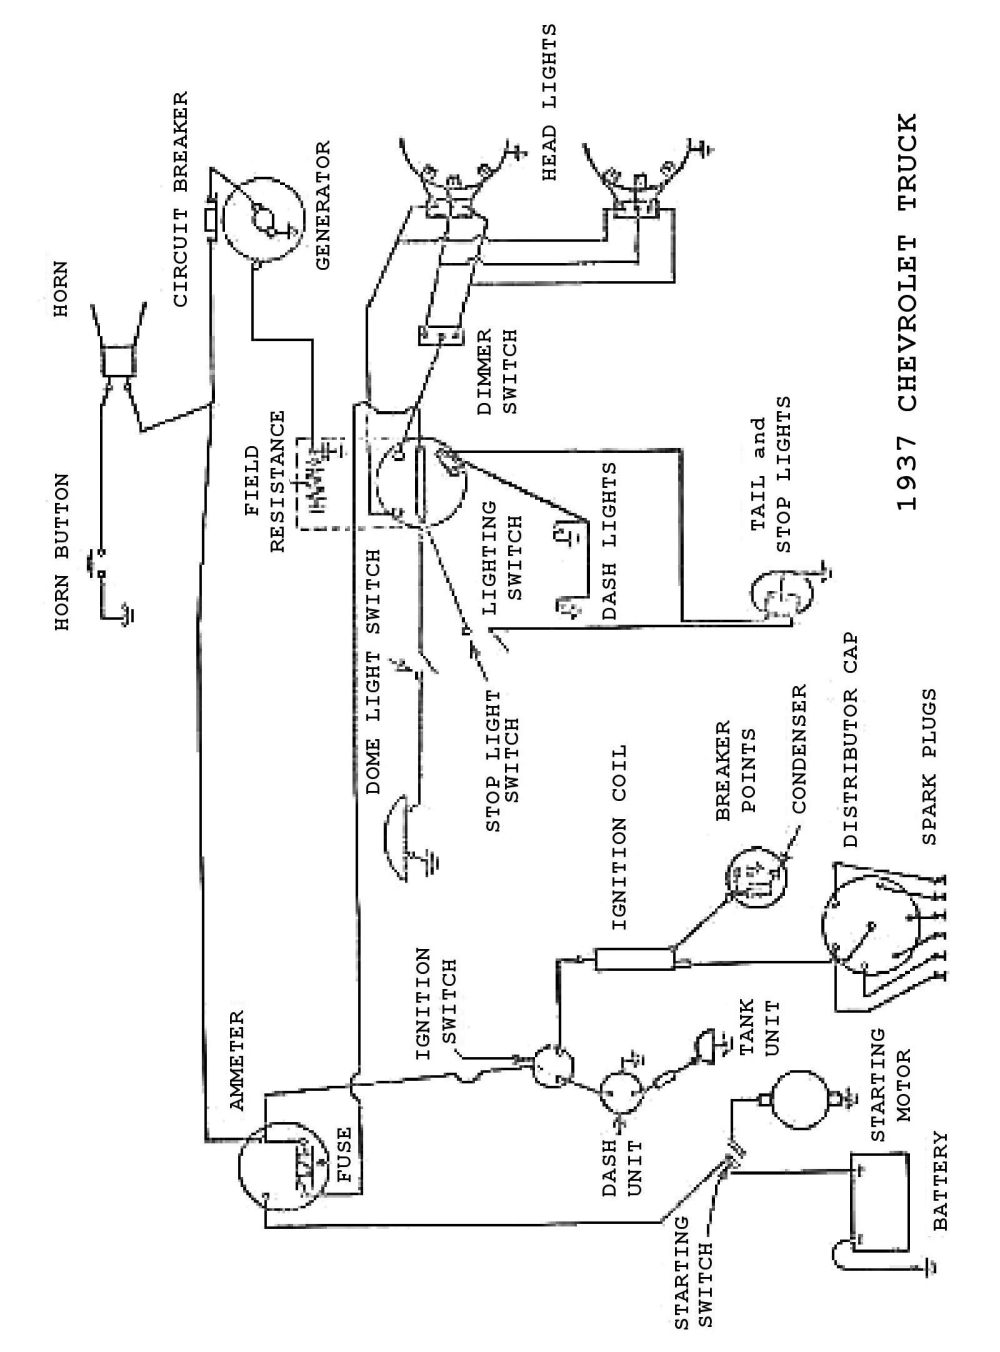 medium resolution of 1937 international truck wiring diagram schematic just wiring data rh ag skiphire co uk